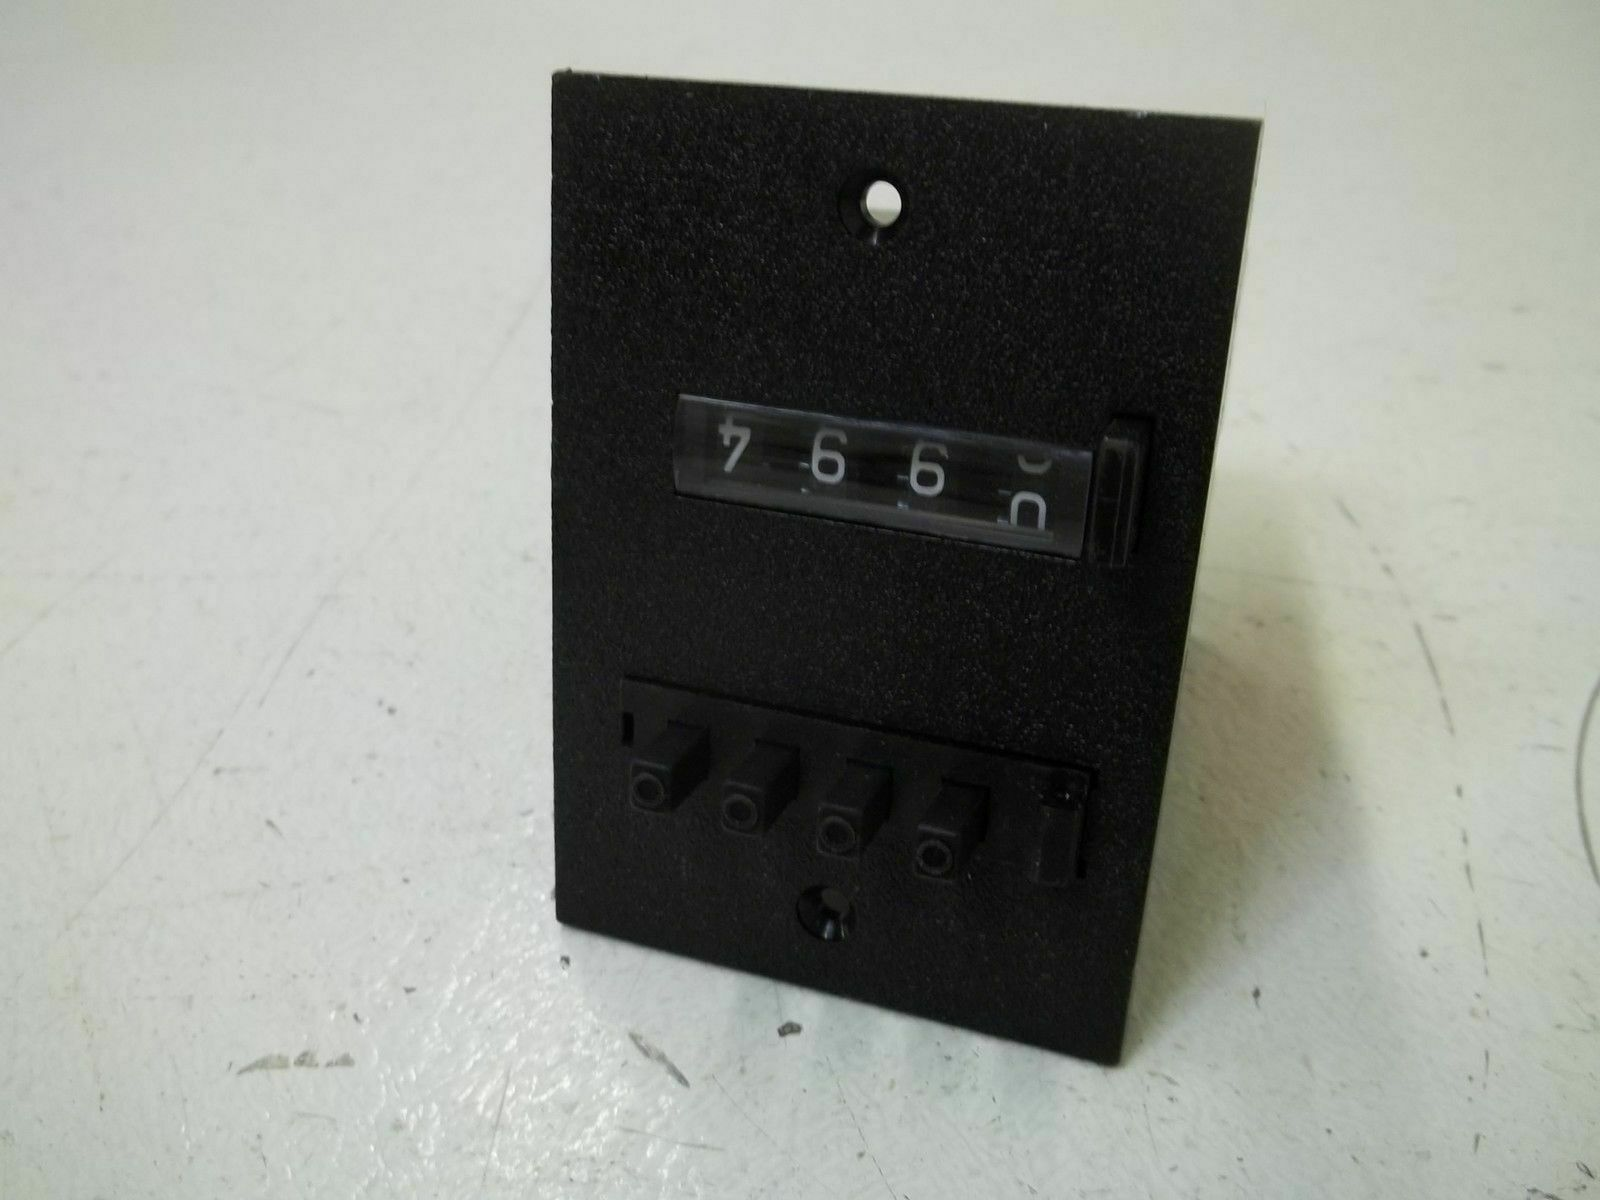 HECON CORP. A6841005 COUNTER USED